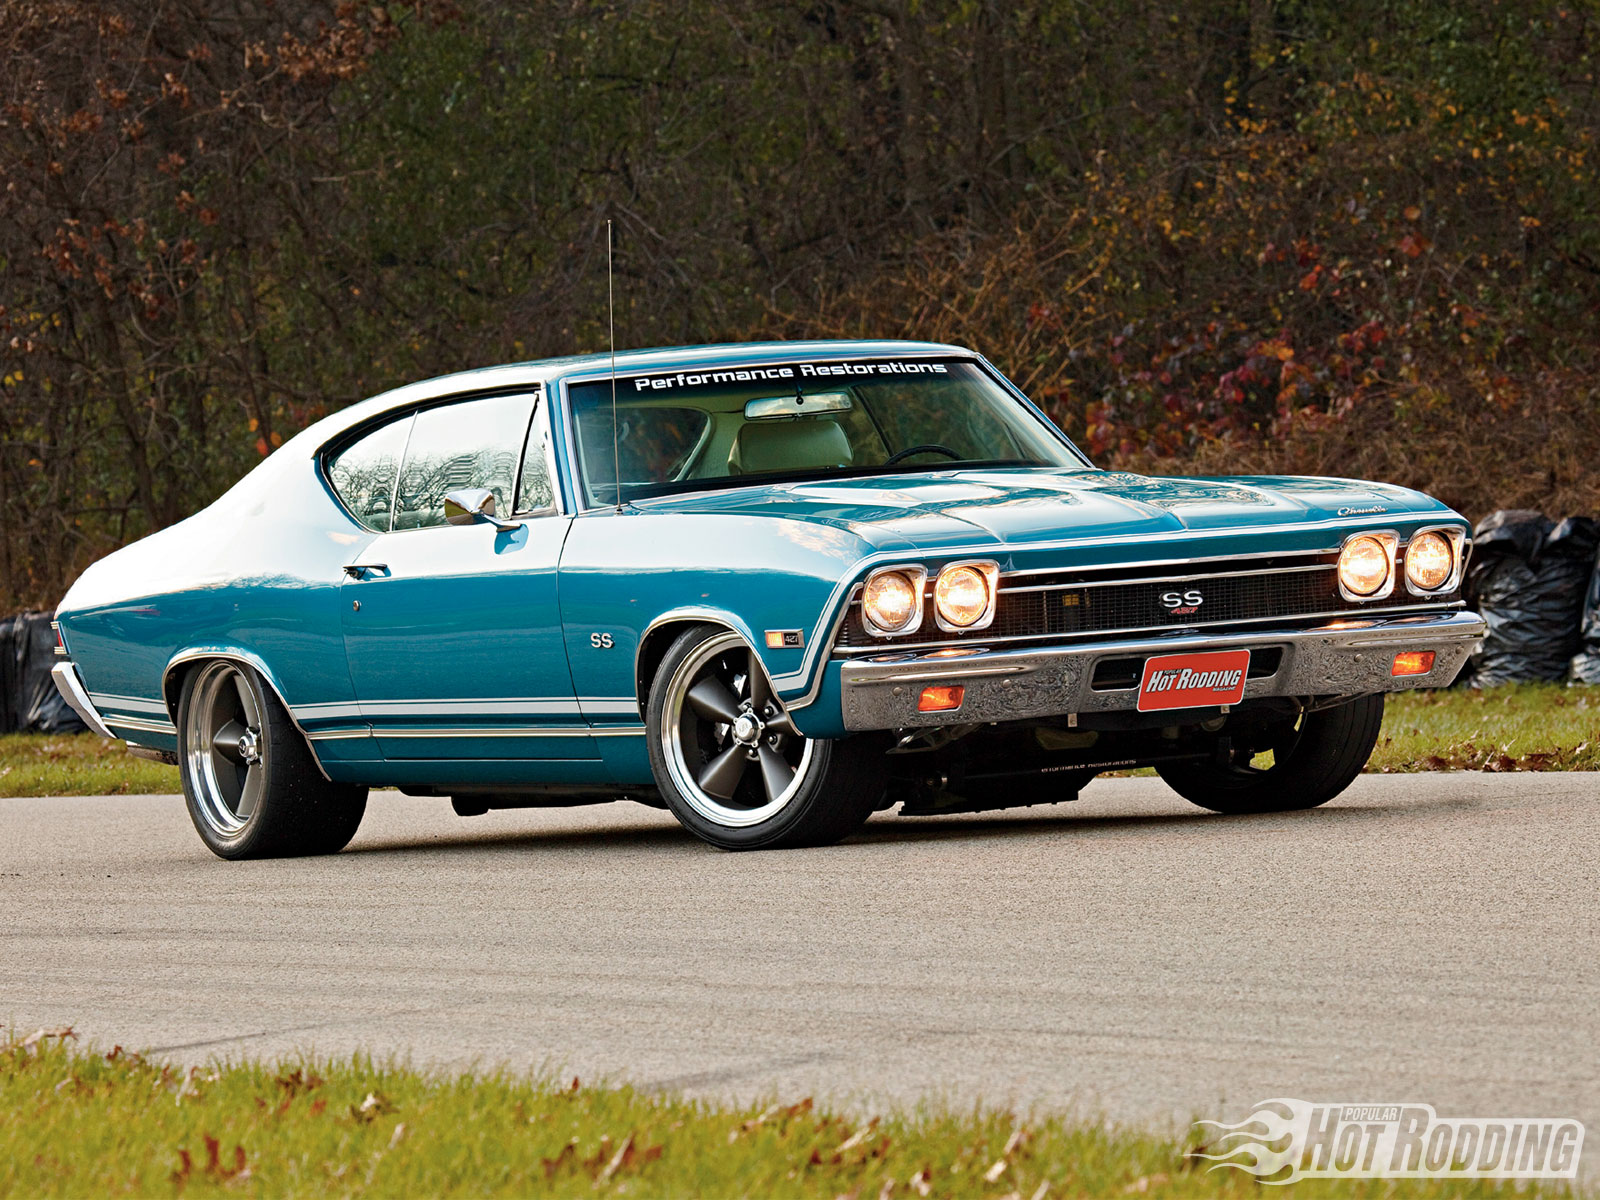 Chevy Muscle Car Wallpaper: 1968 Chevy Chevelle SS 900 H.p. Wallpaper And Background